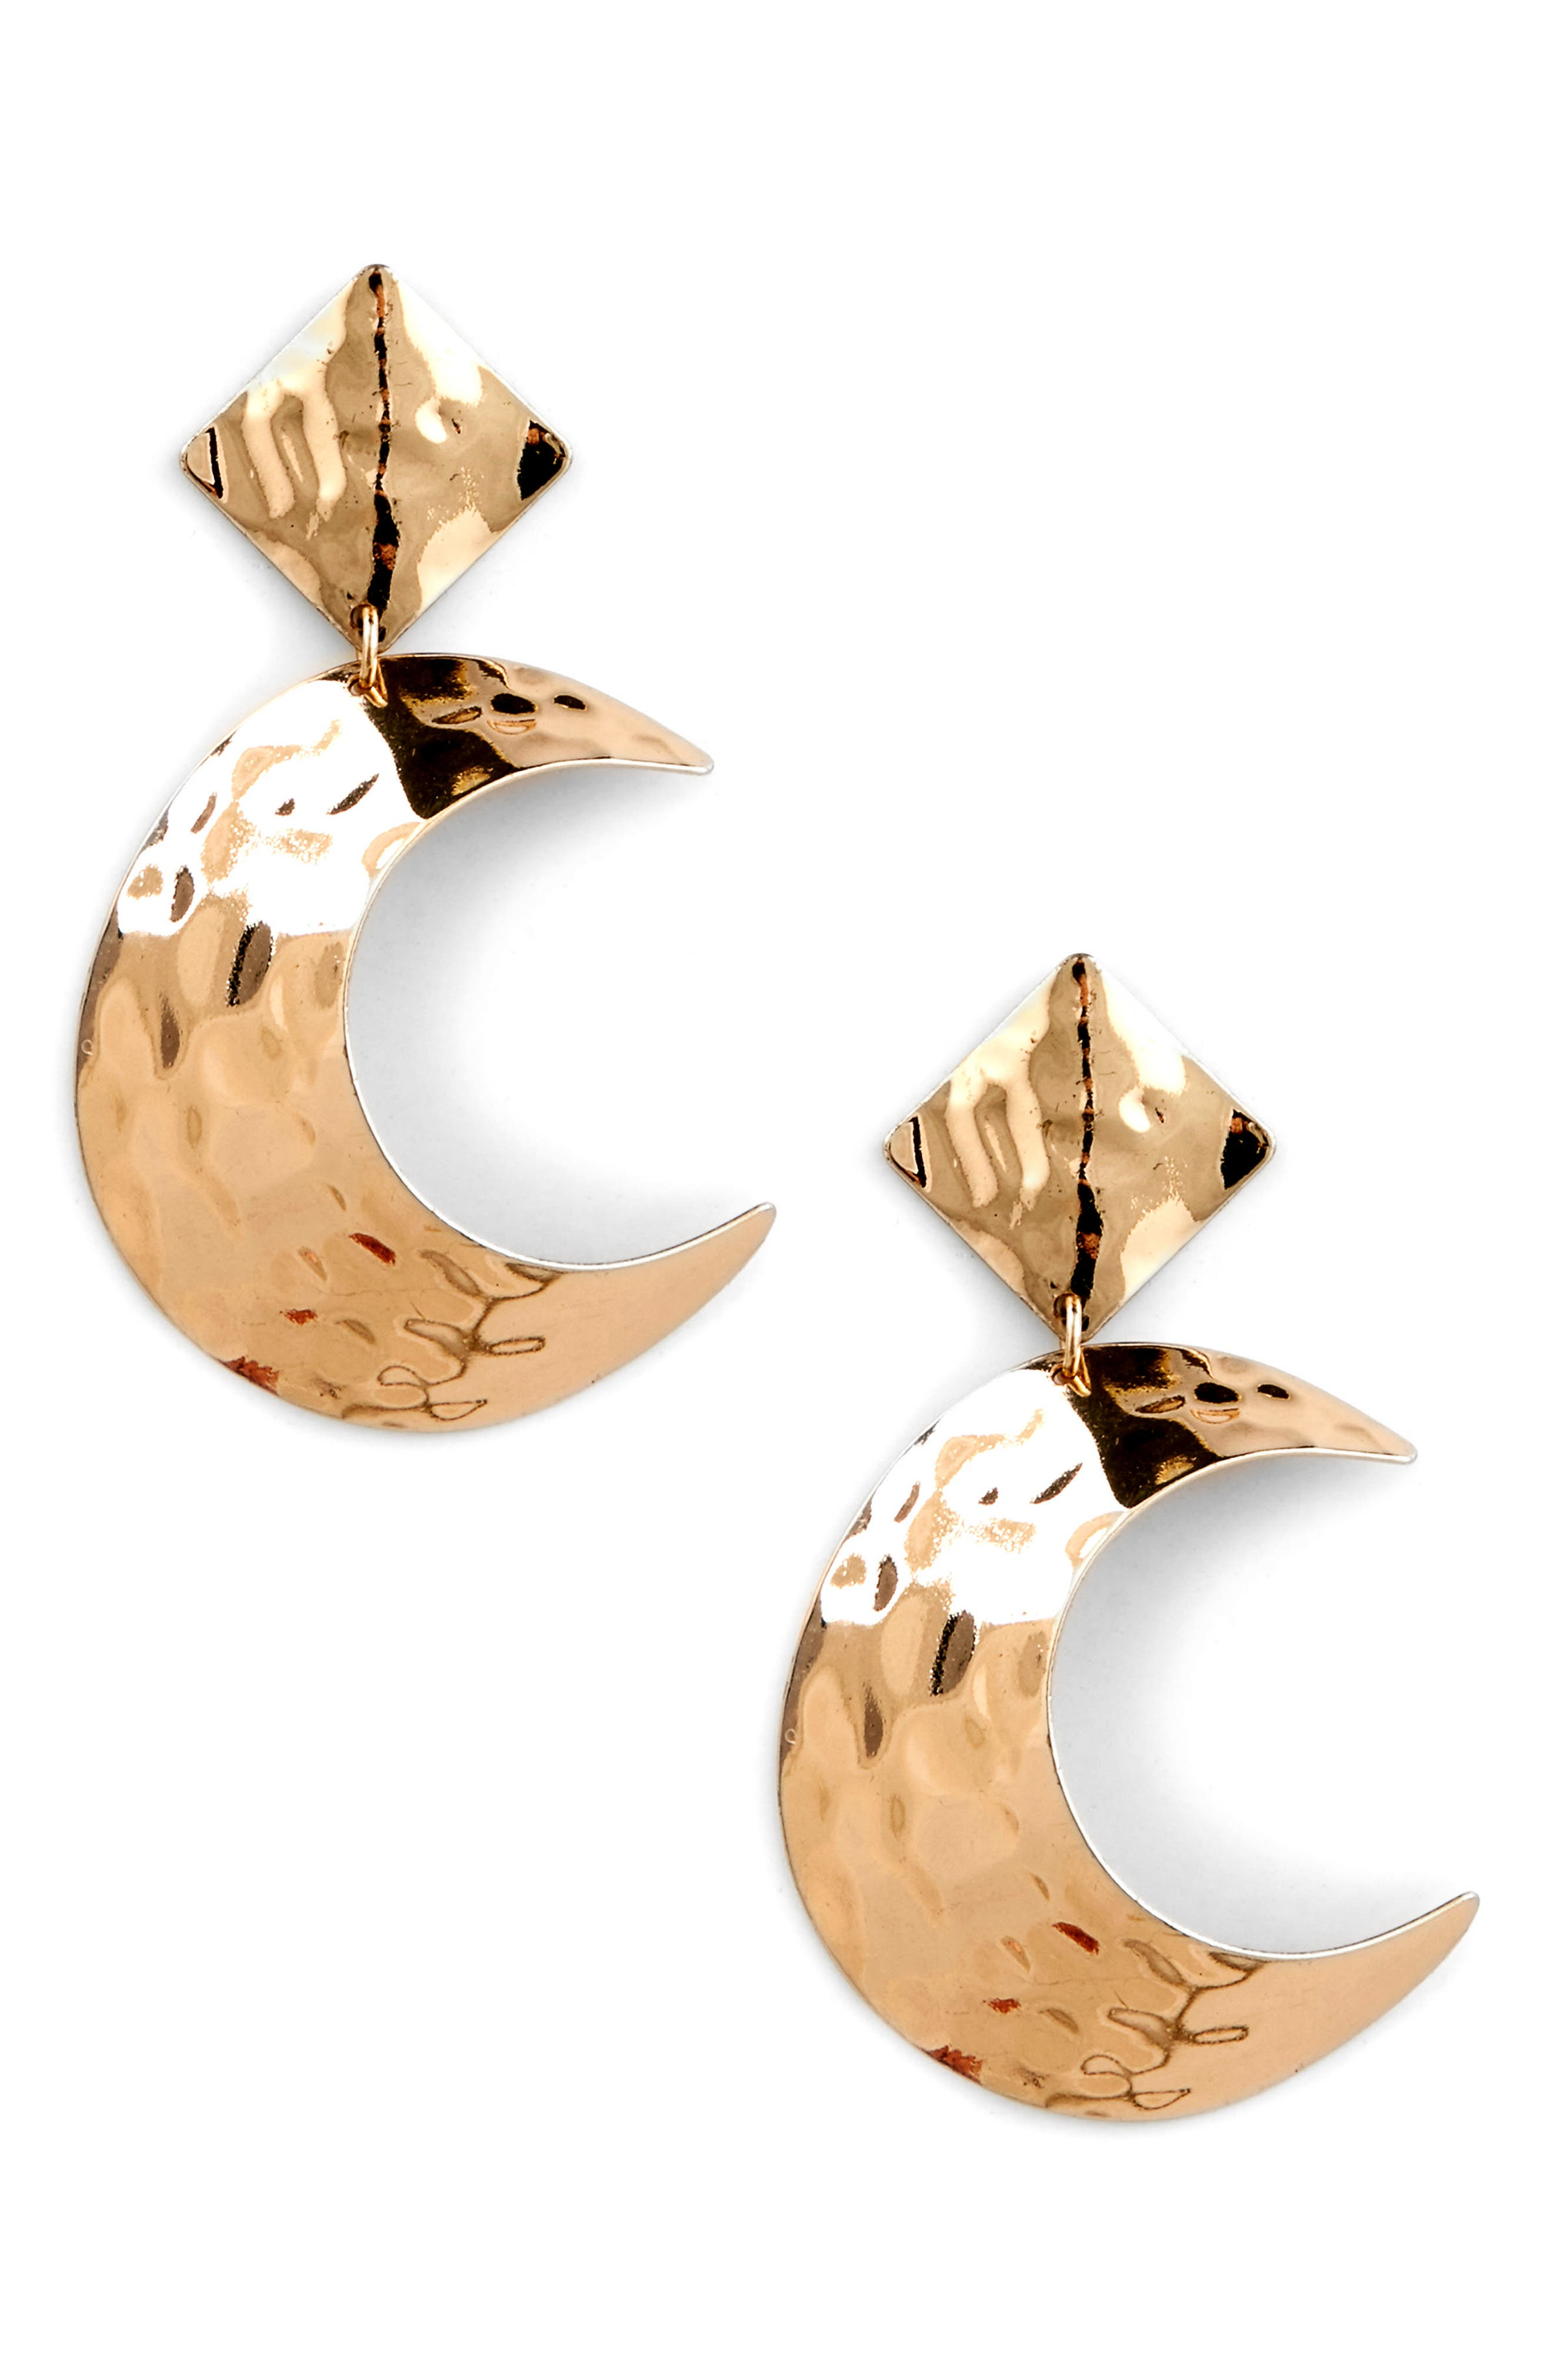 Lunar Statement Earrings,                             Main thumbnail 1, color,                             Gold